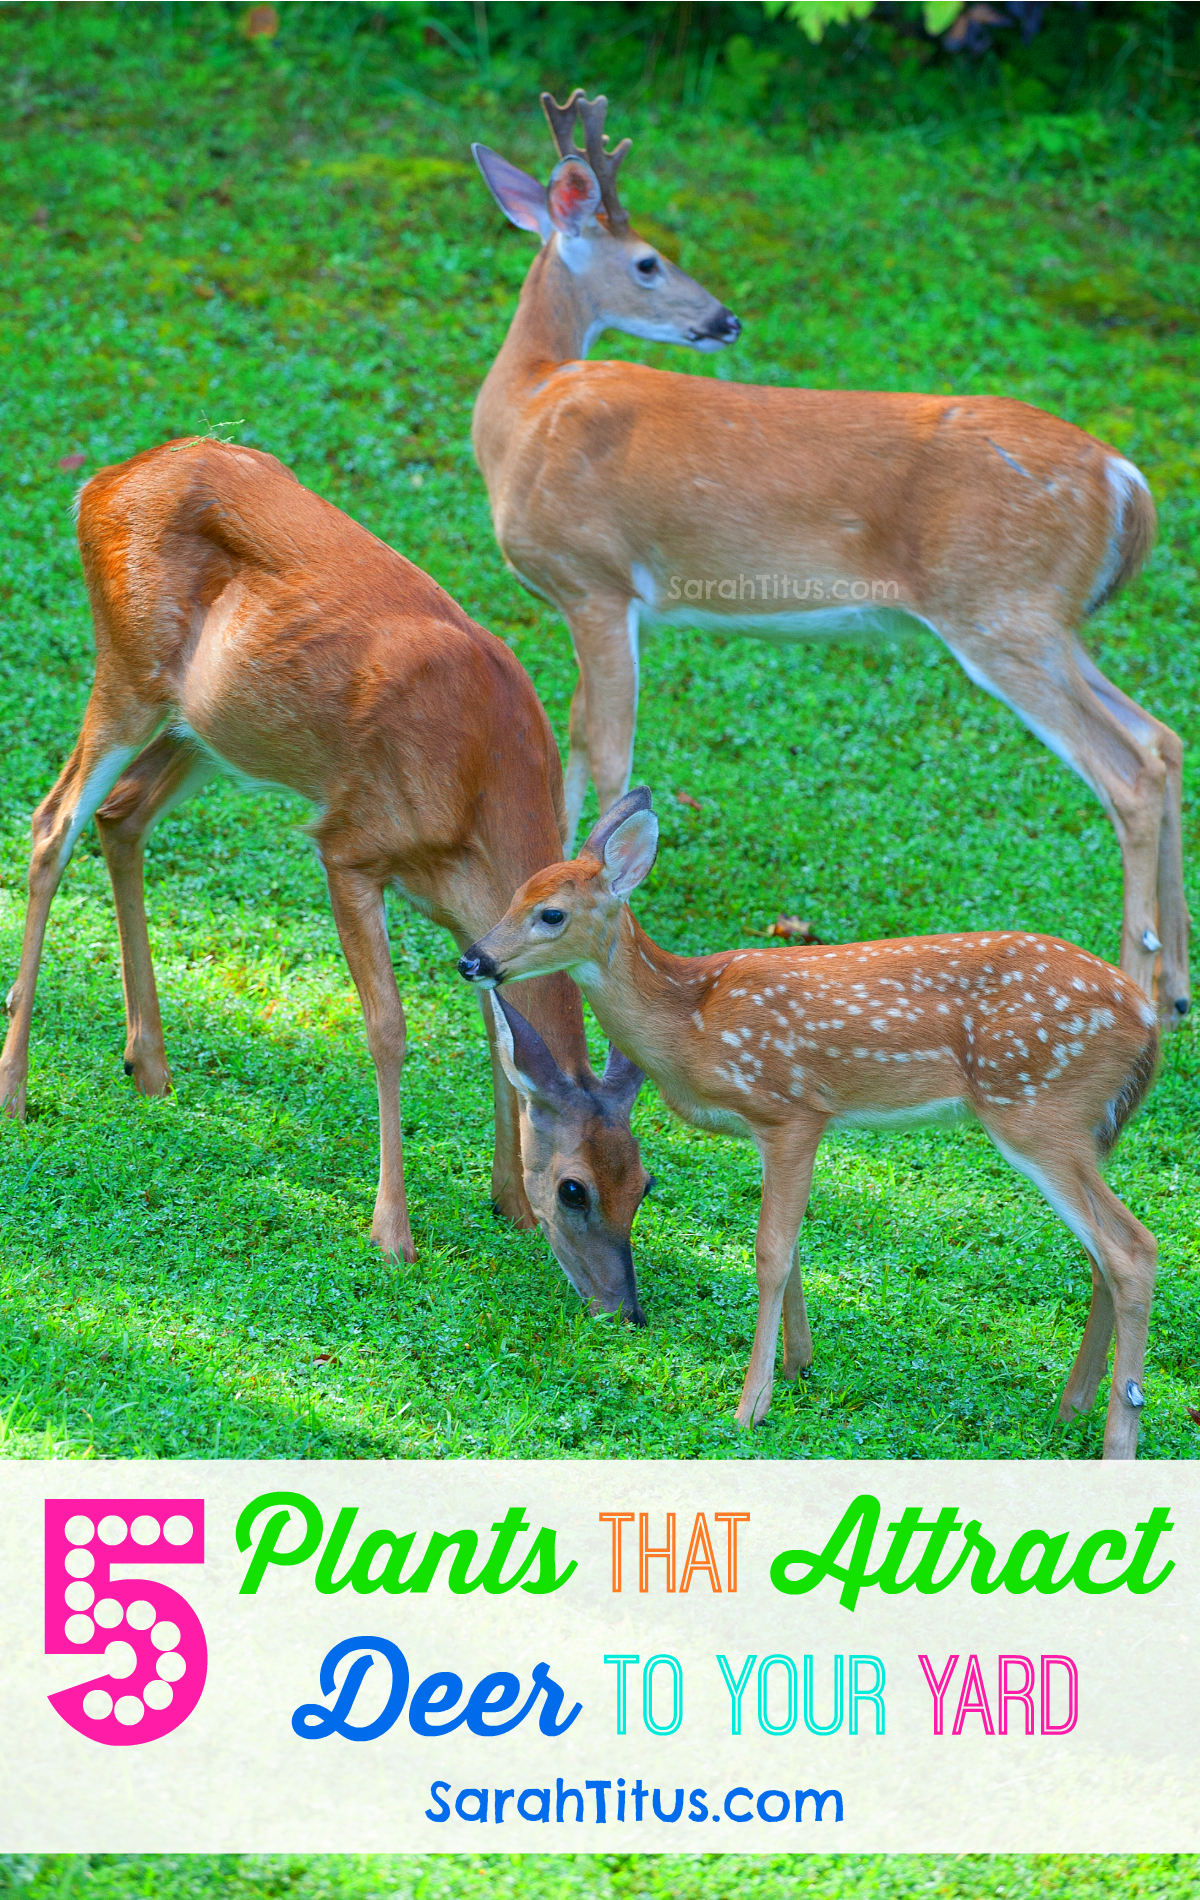 5 Plants That Attract Deer To Your Yard - Sarah Titus